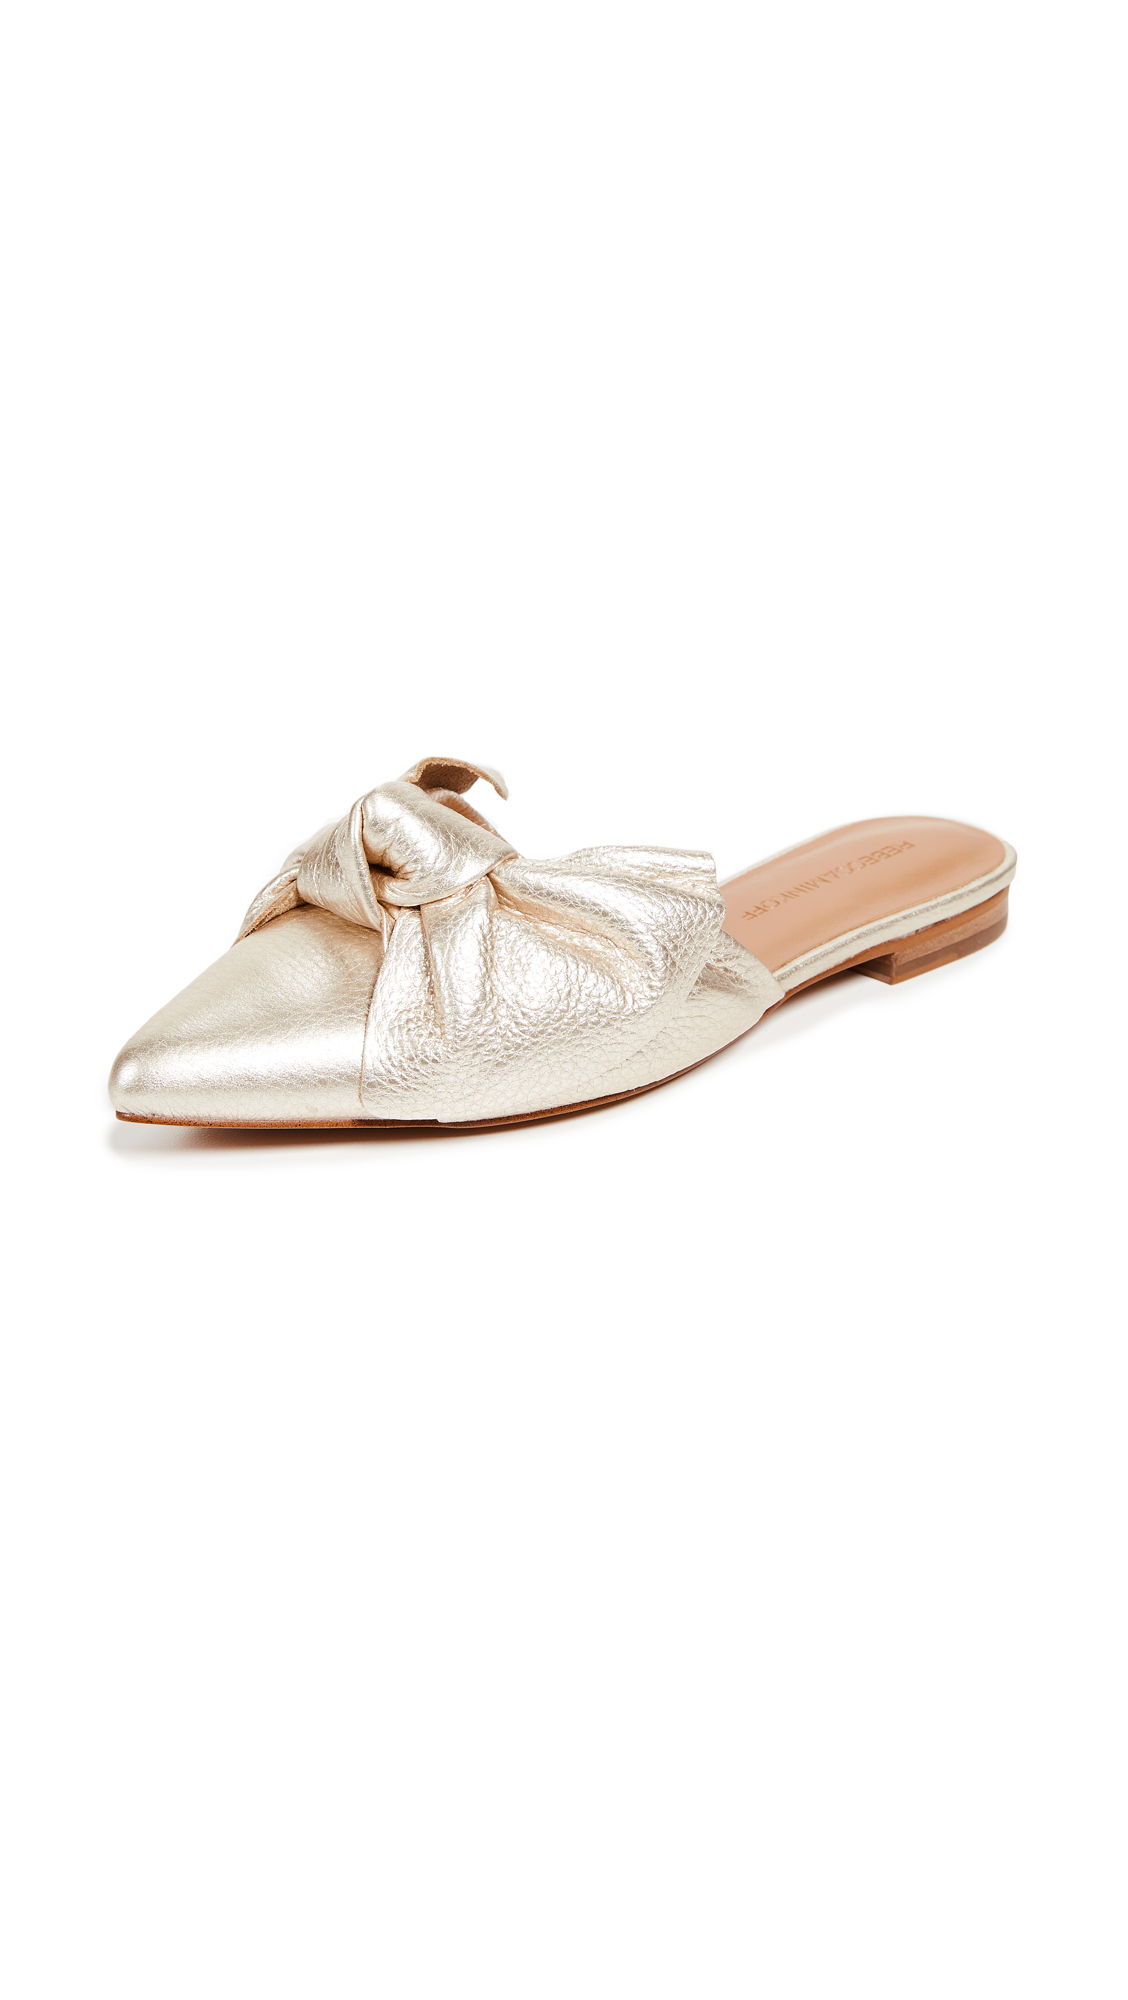 Rebecca Minkoff Alexis Bow Point Toe Flats - Gold